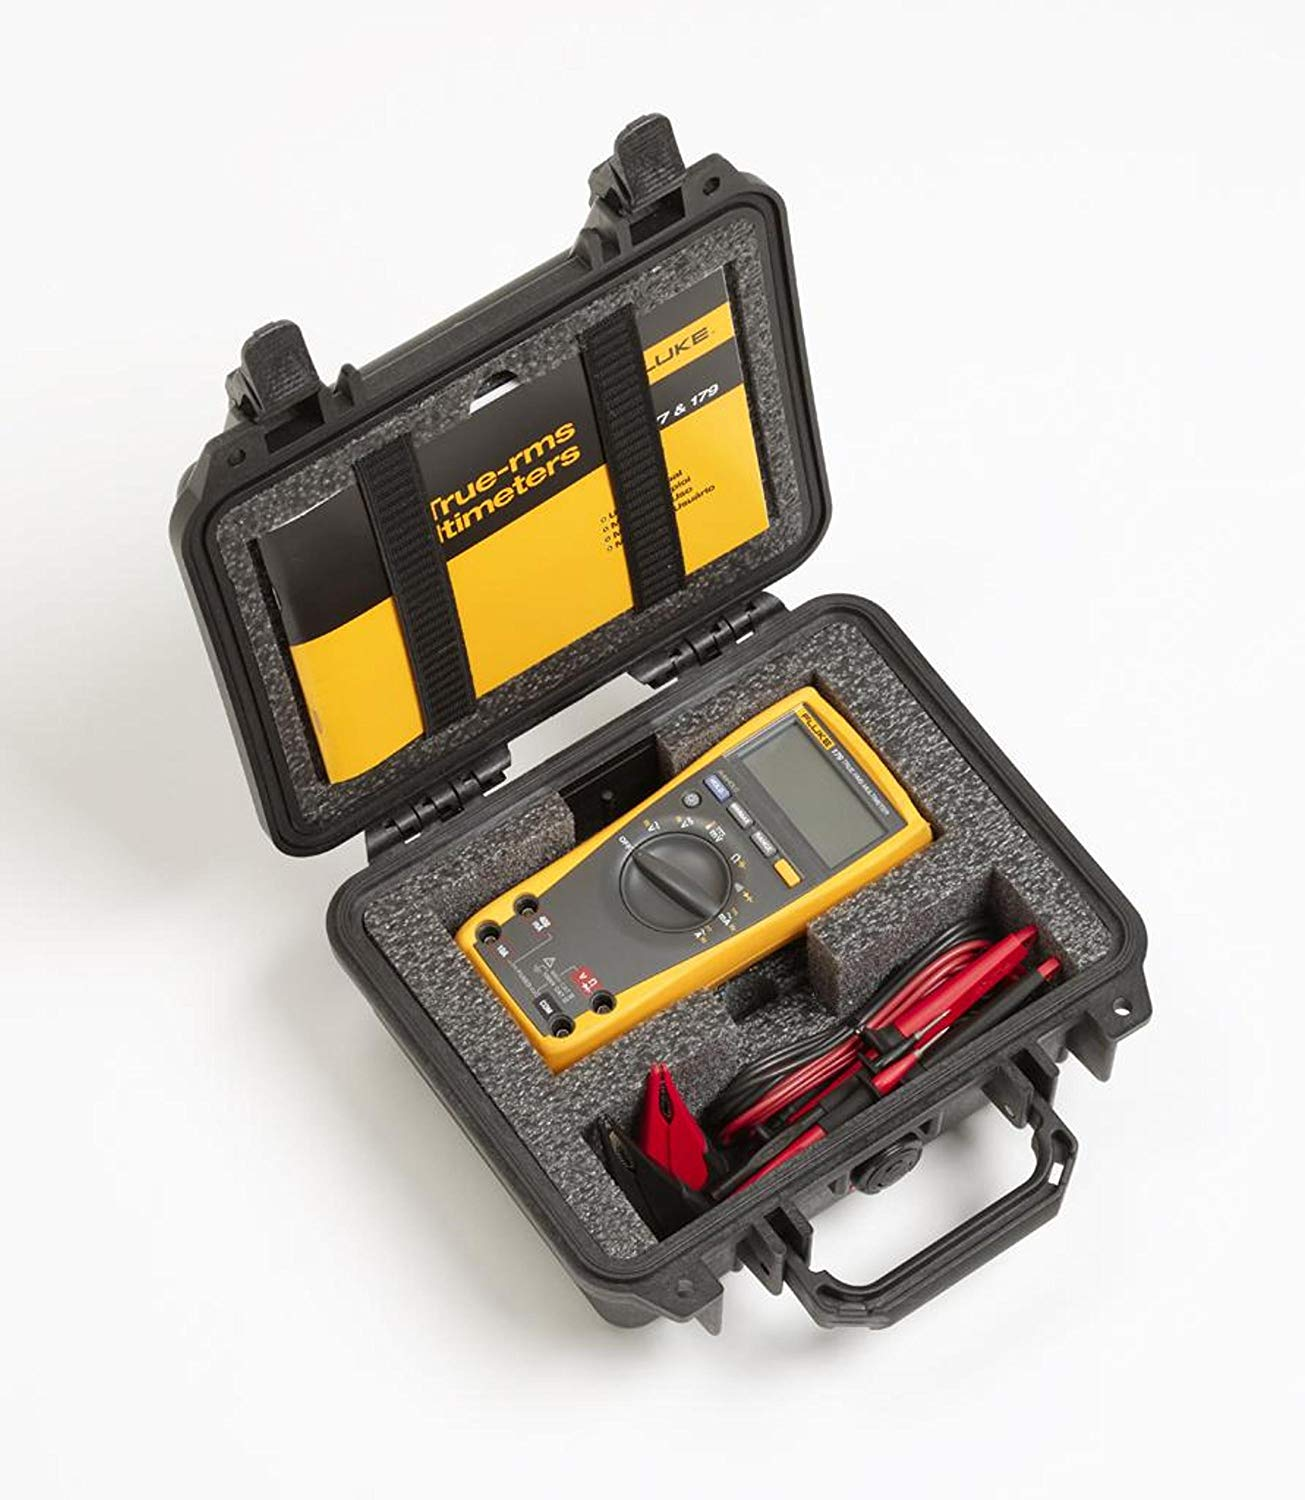 Fluke CXT170 Extreme Pelican Hard Case for 170 Series